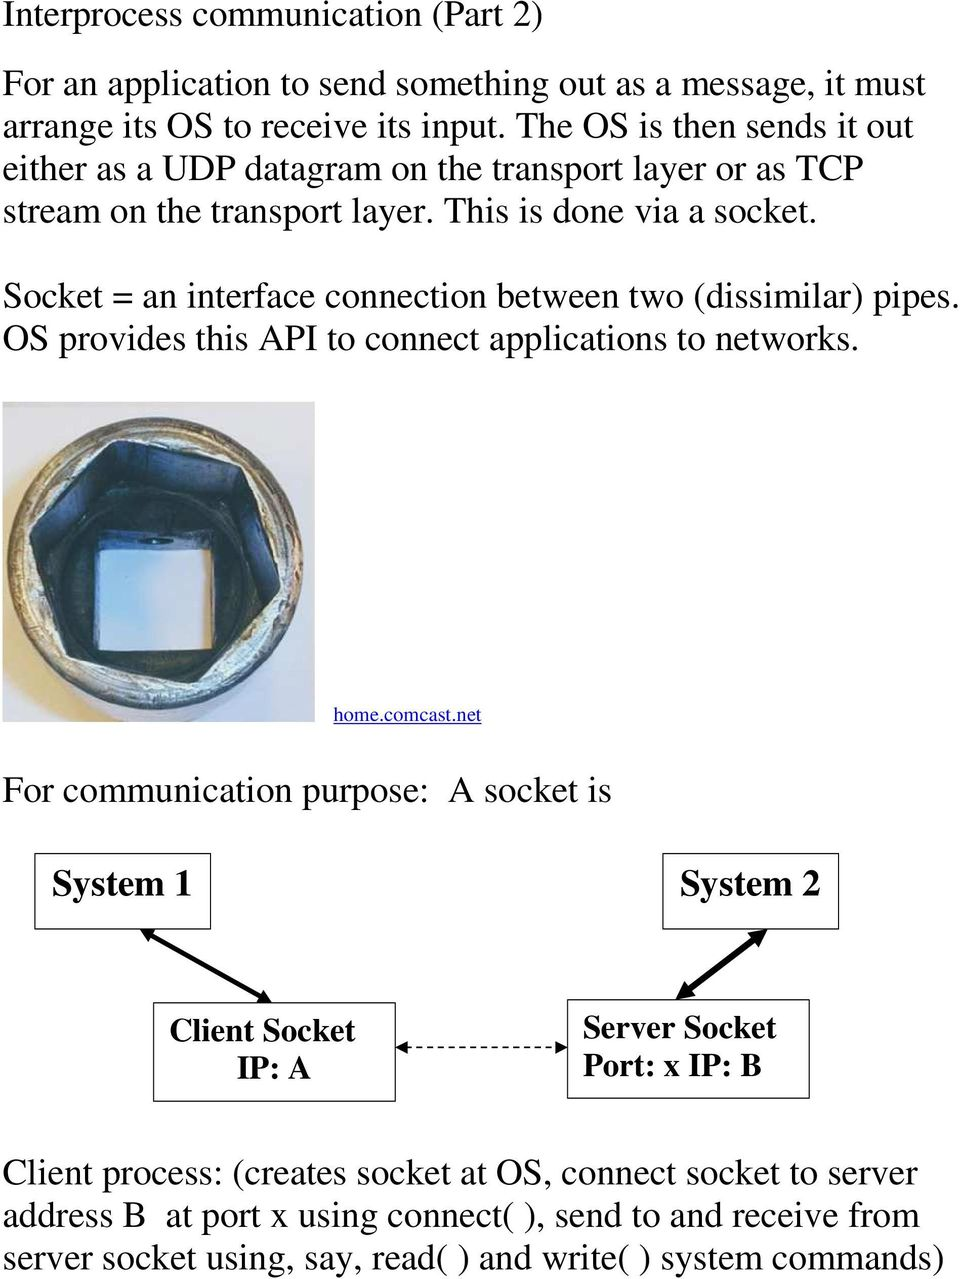 Socket = an interface connection between two (dissimilar) pipes. OS provides this API to connect applications to networks. home.comcast.